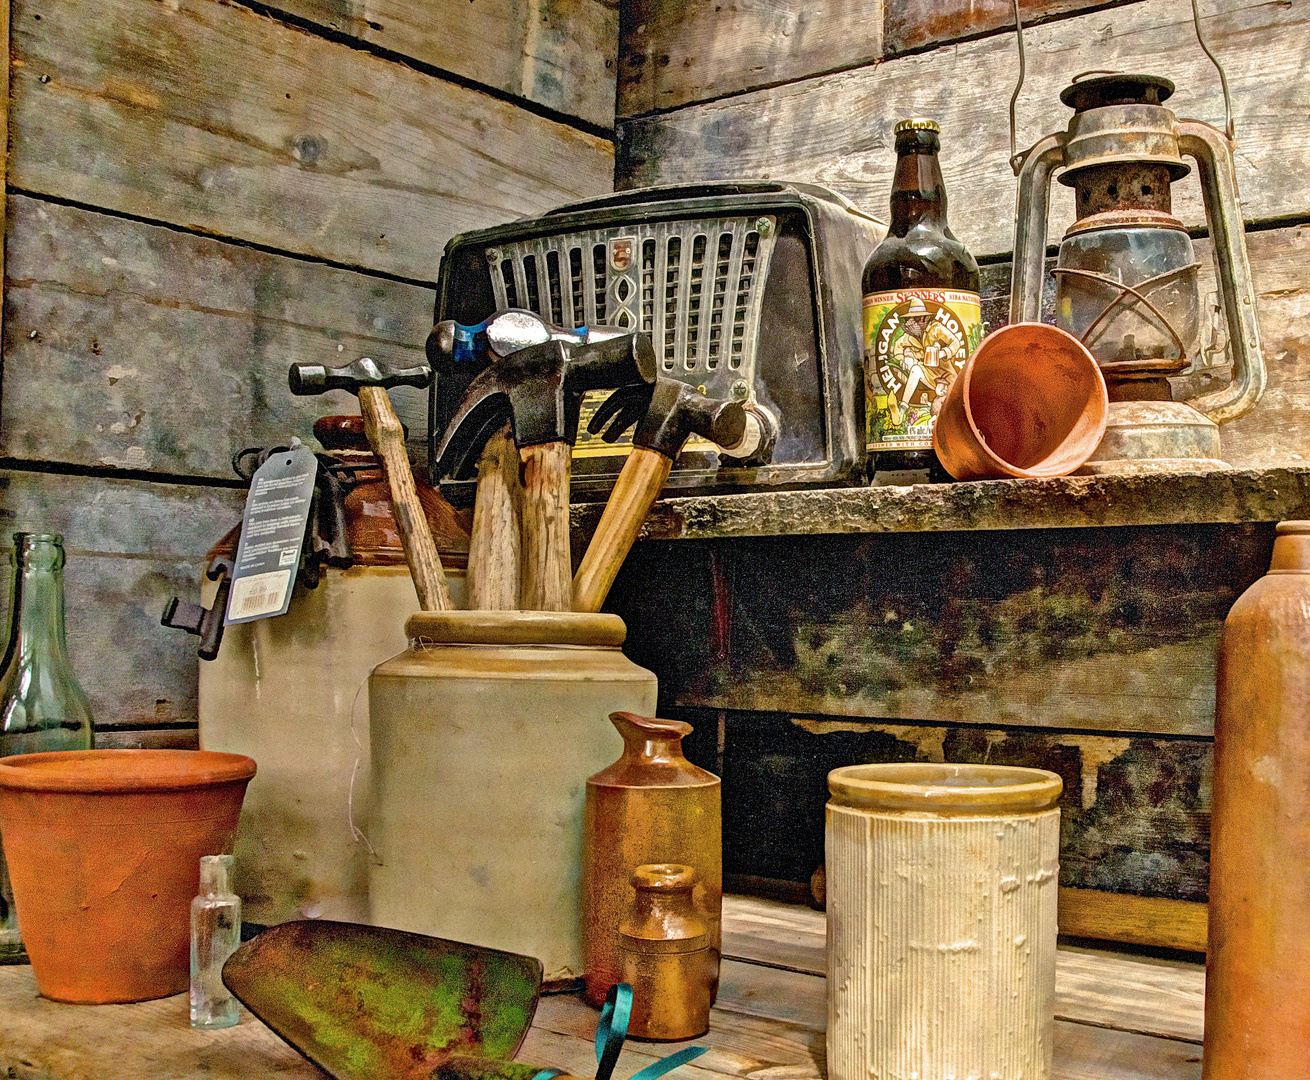 Contents of a shed